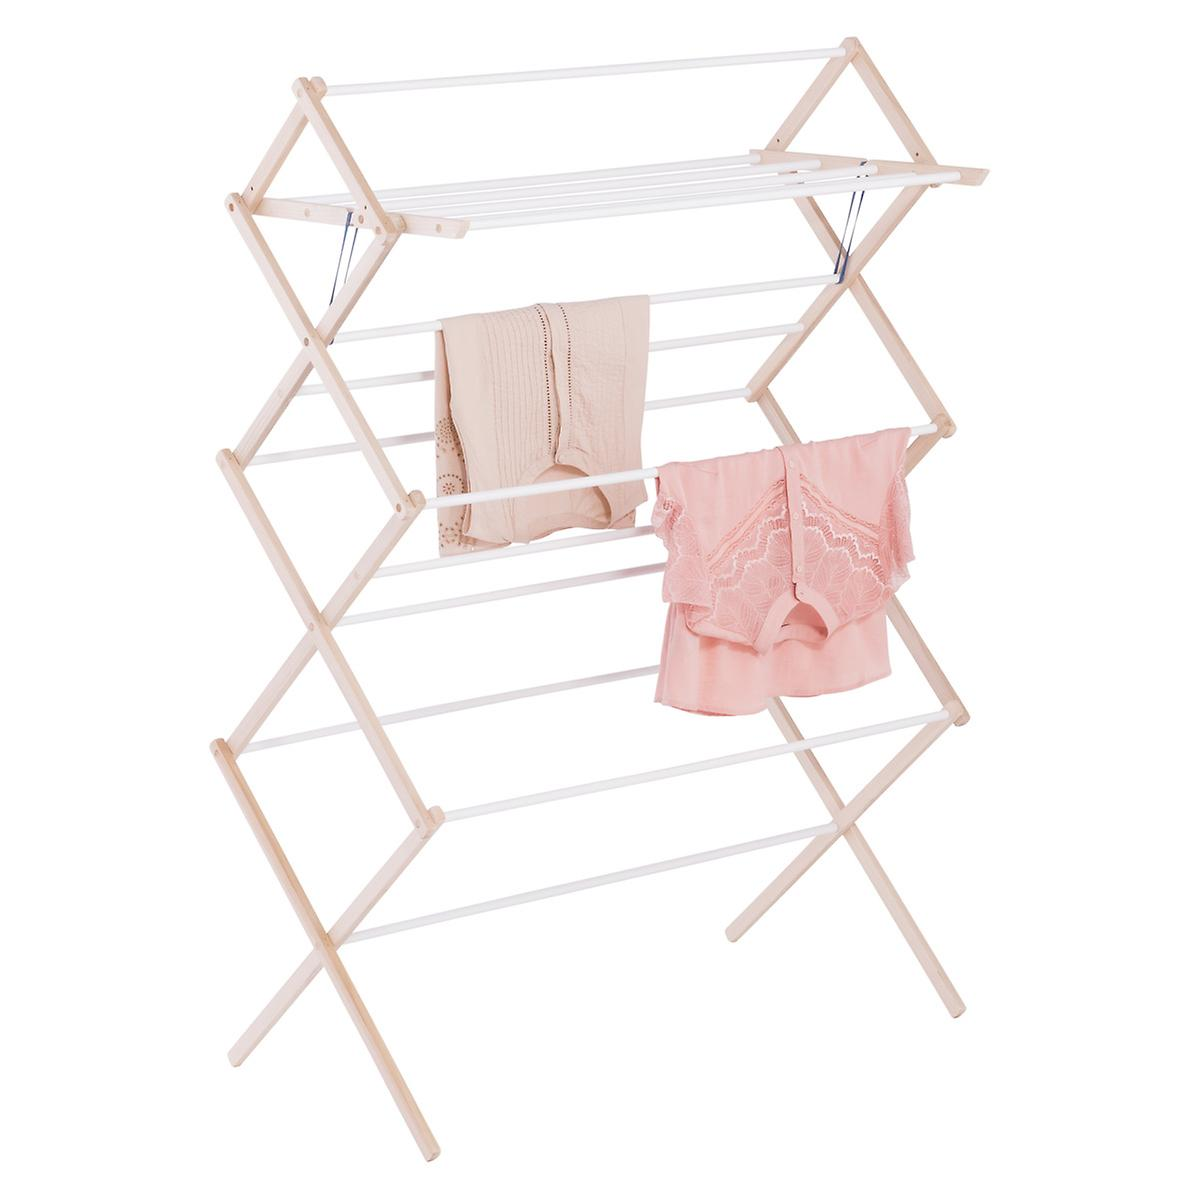 14-Dowel Wooden Clothes Drying Rack ...